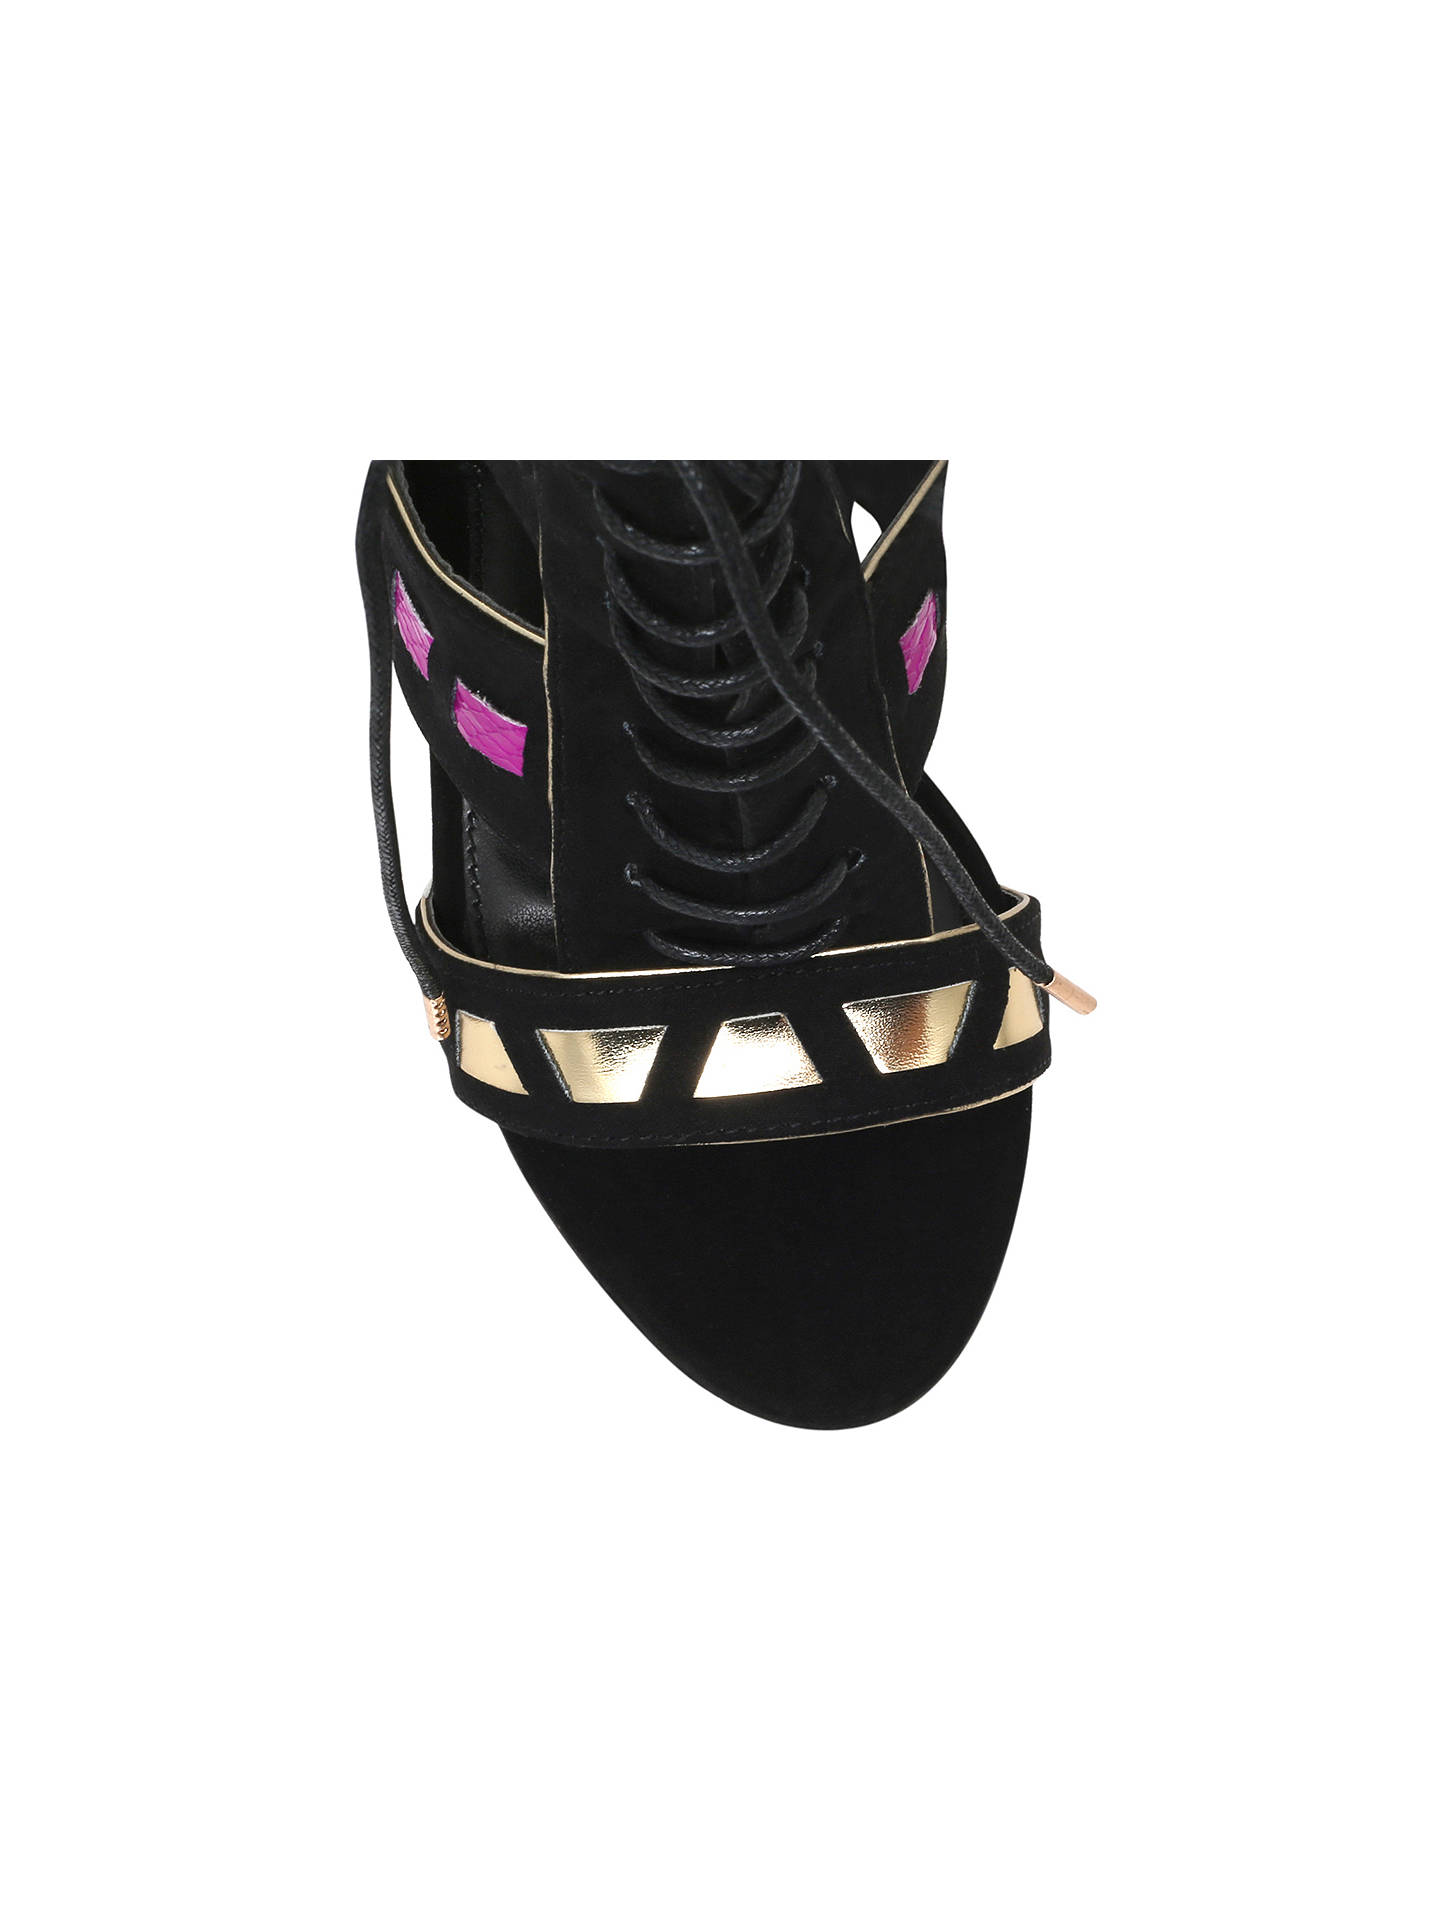 20a477bd53 ... Buy Carvela Giraffe High Heel Sandals, Black, 3 Online at johnlewis.com